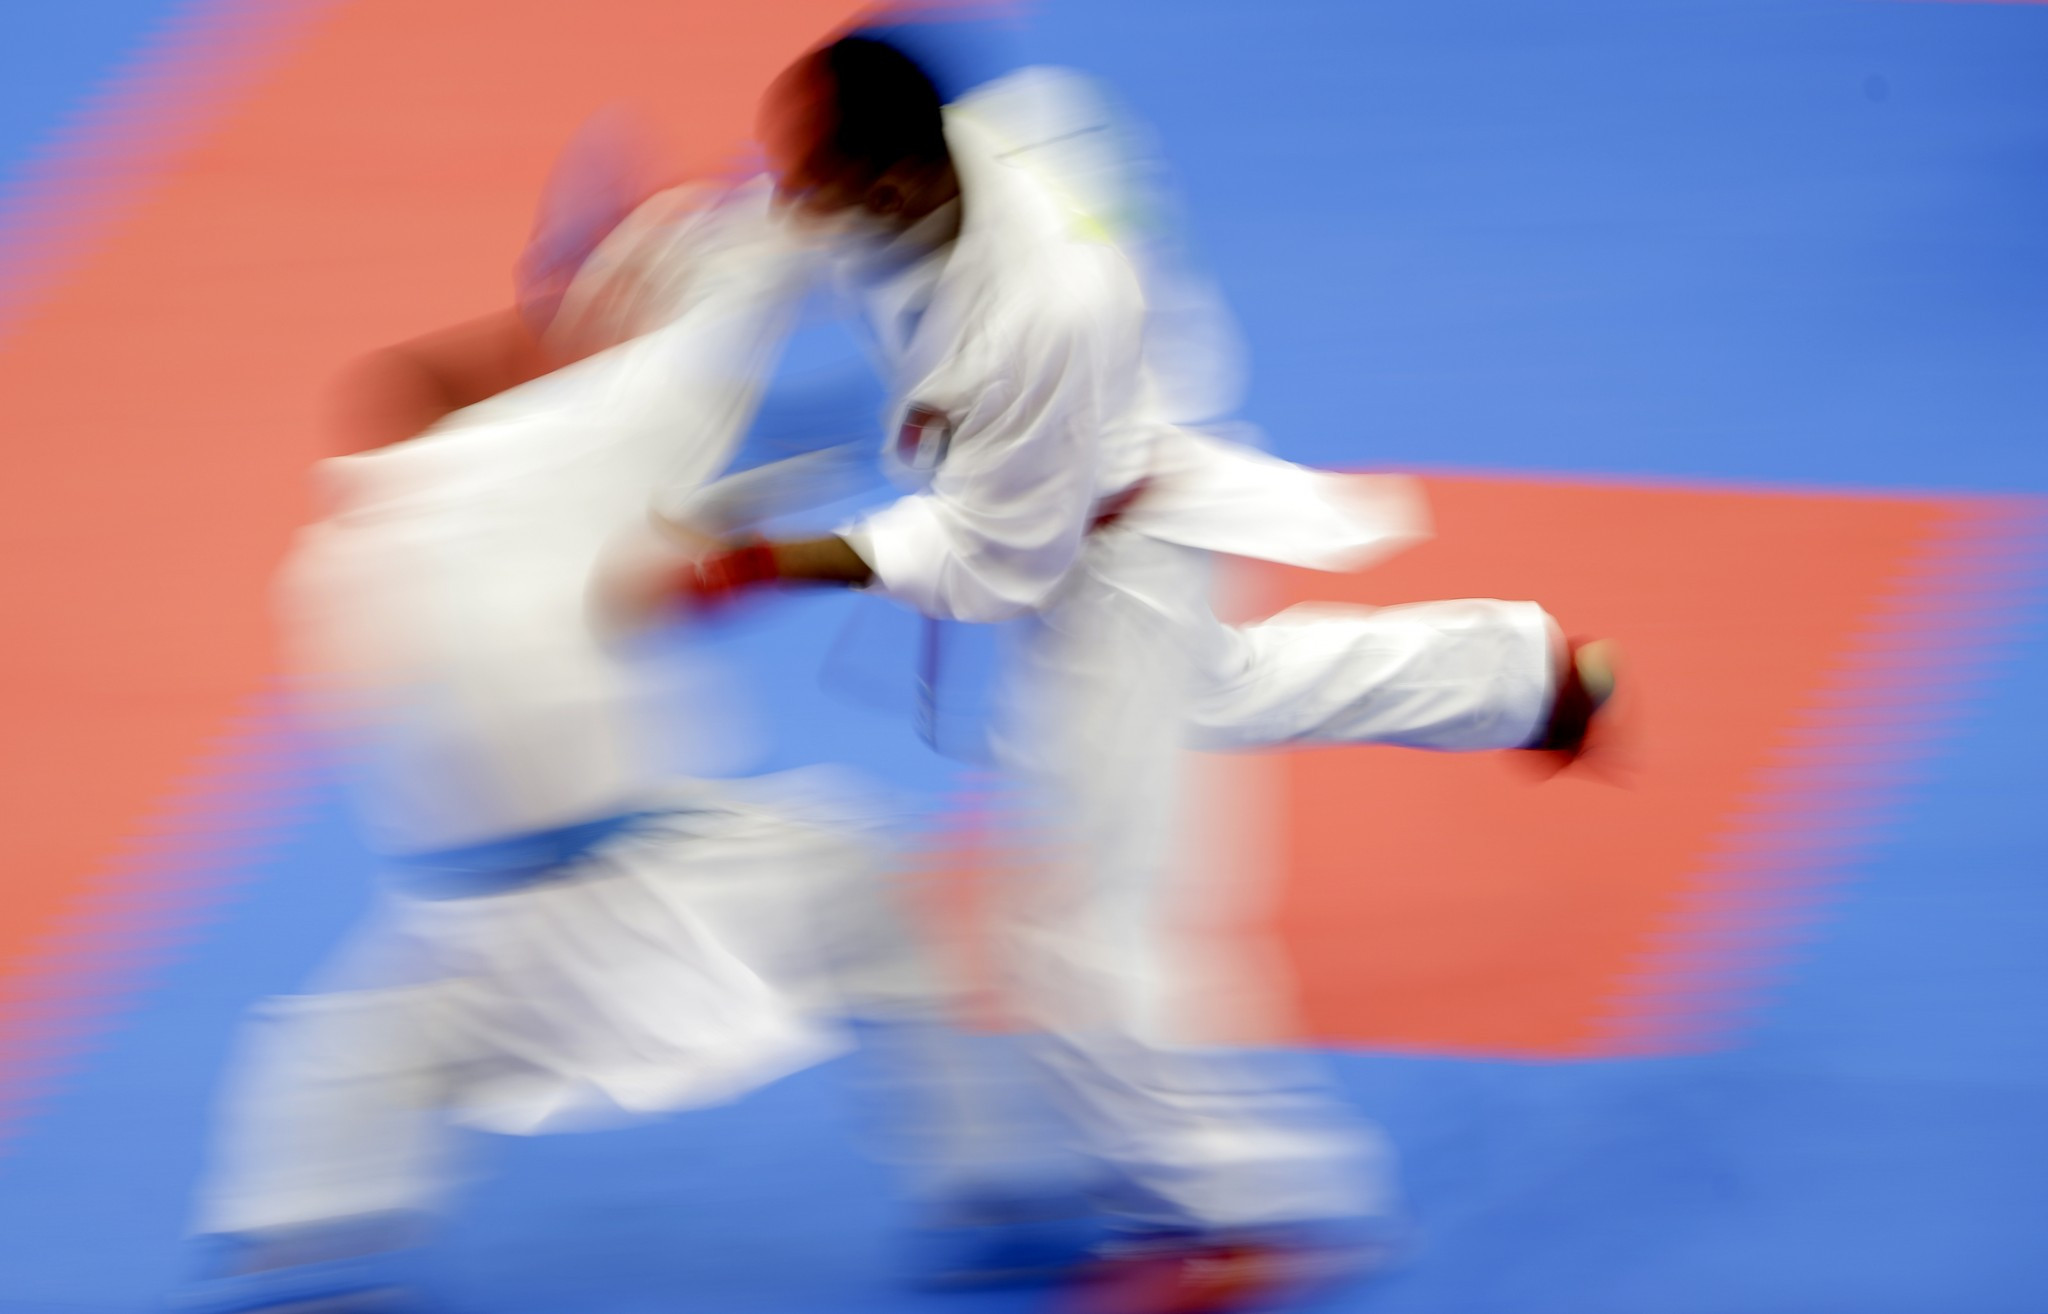 This week's Commonwealth Karate Championships in Durban are intended to showcase the sport's suitability for future inclusion in the Commonwealth Games ©Getty Images